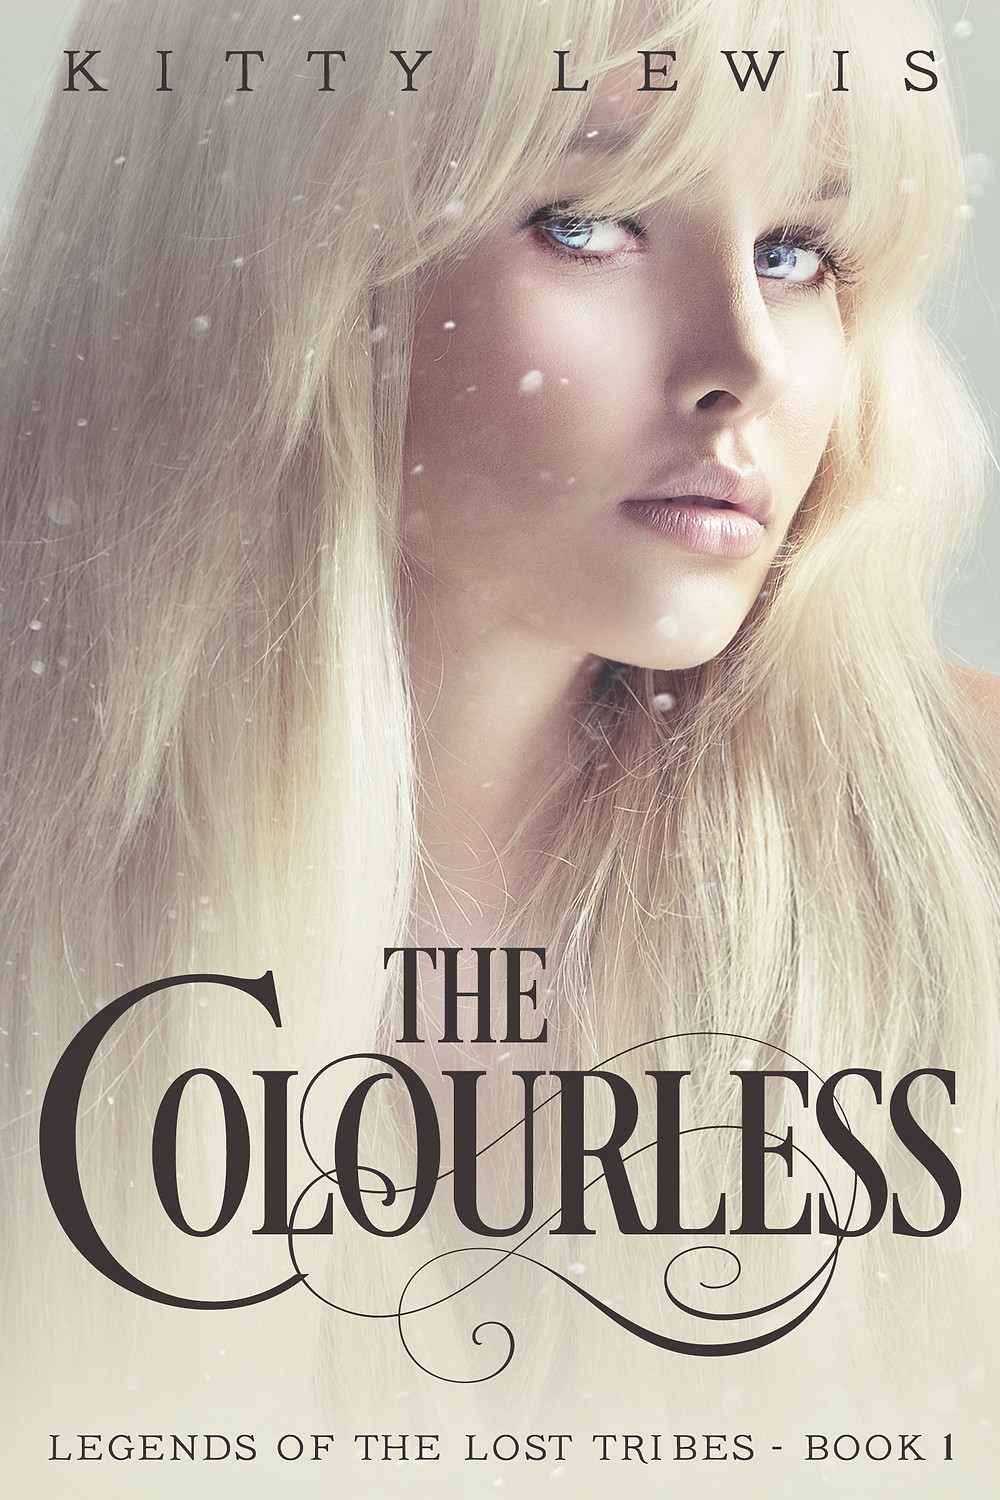 New Colourless cover